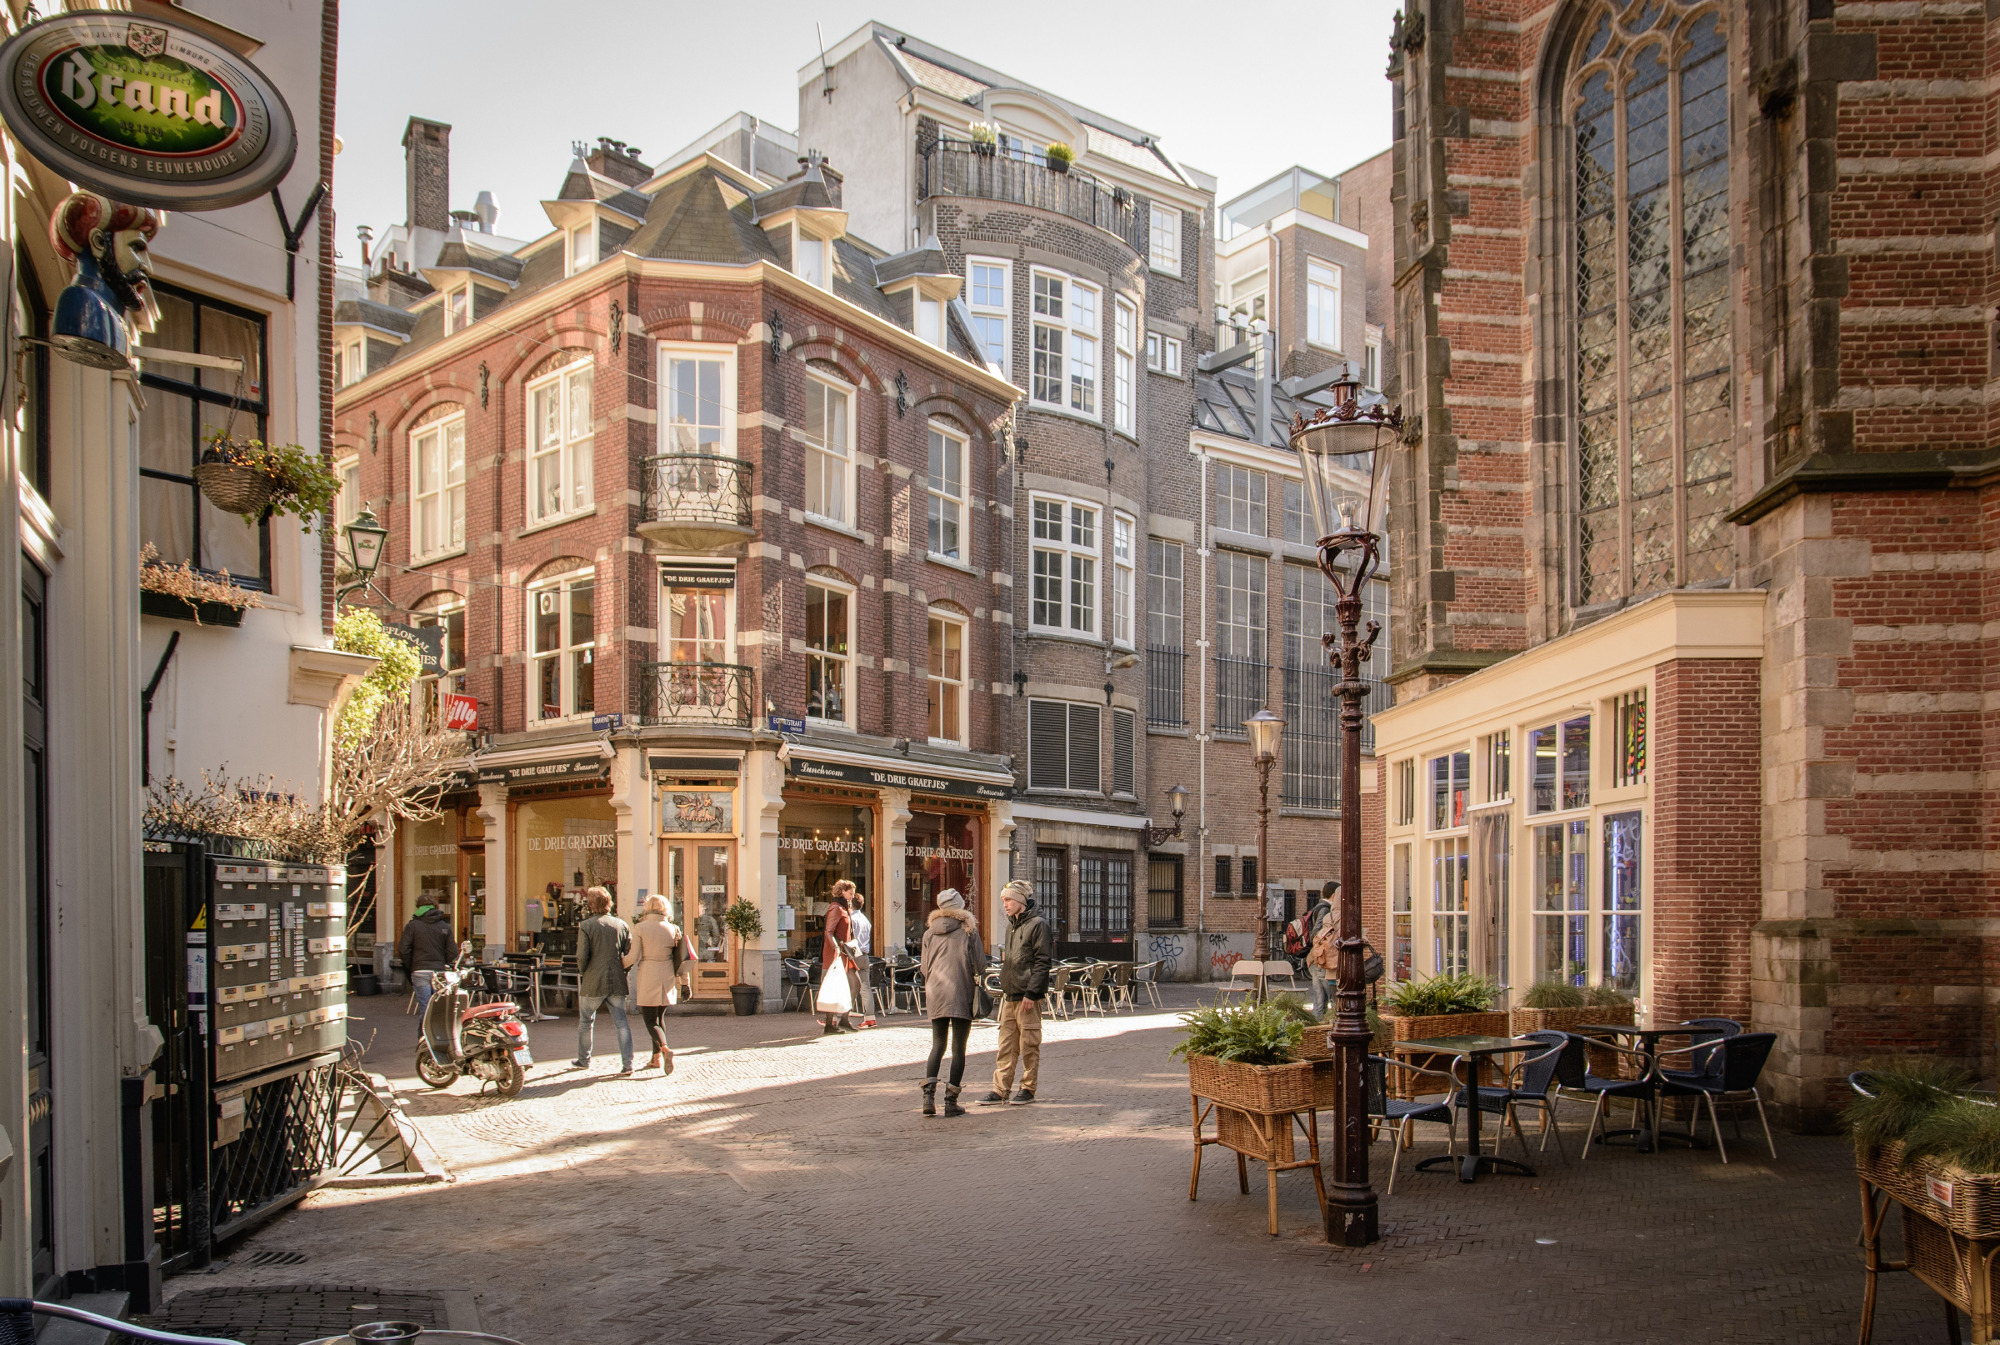 December proved to be the best time to book accommodation in Amsterdam.